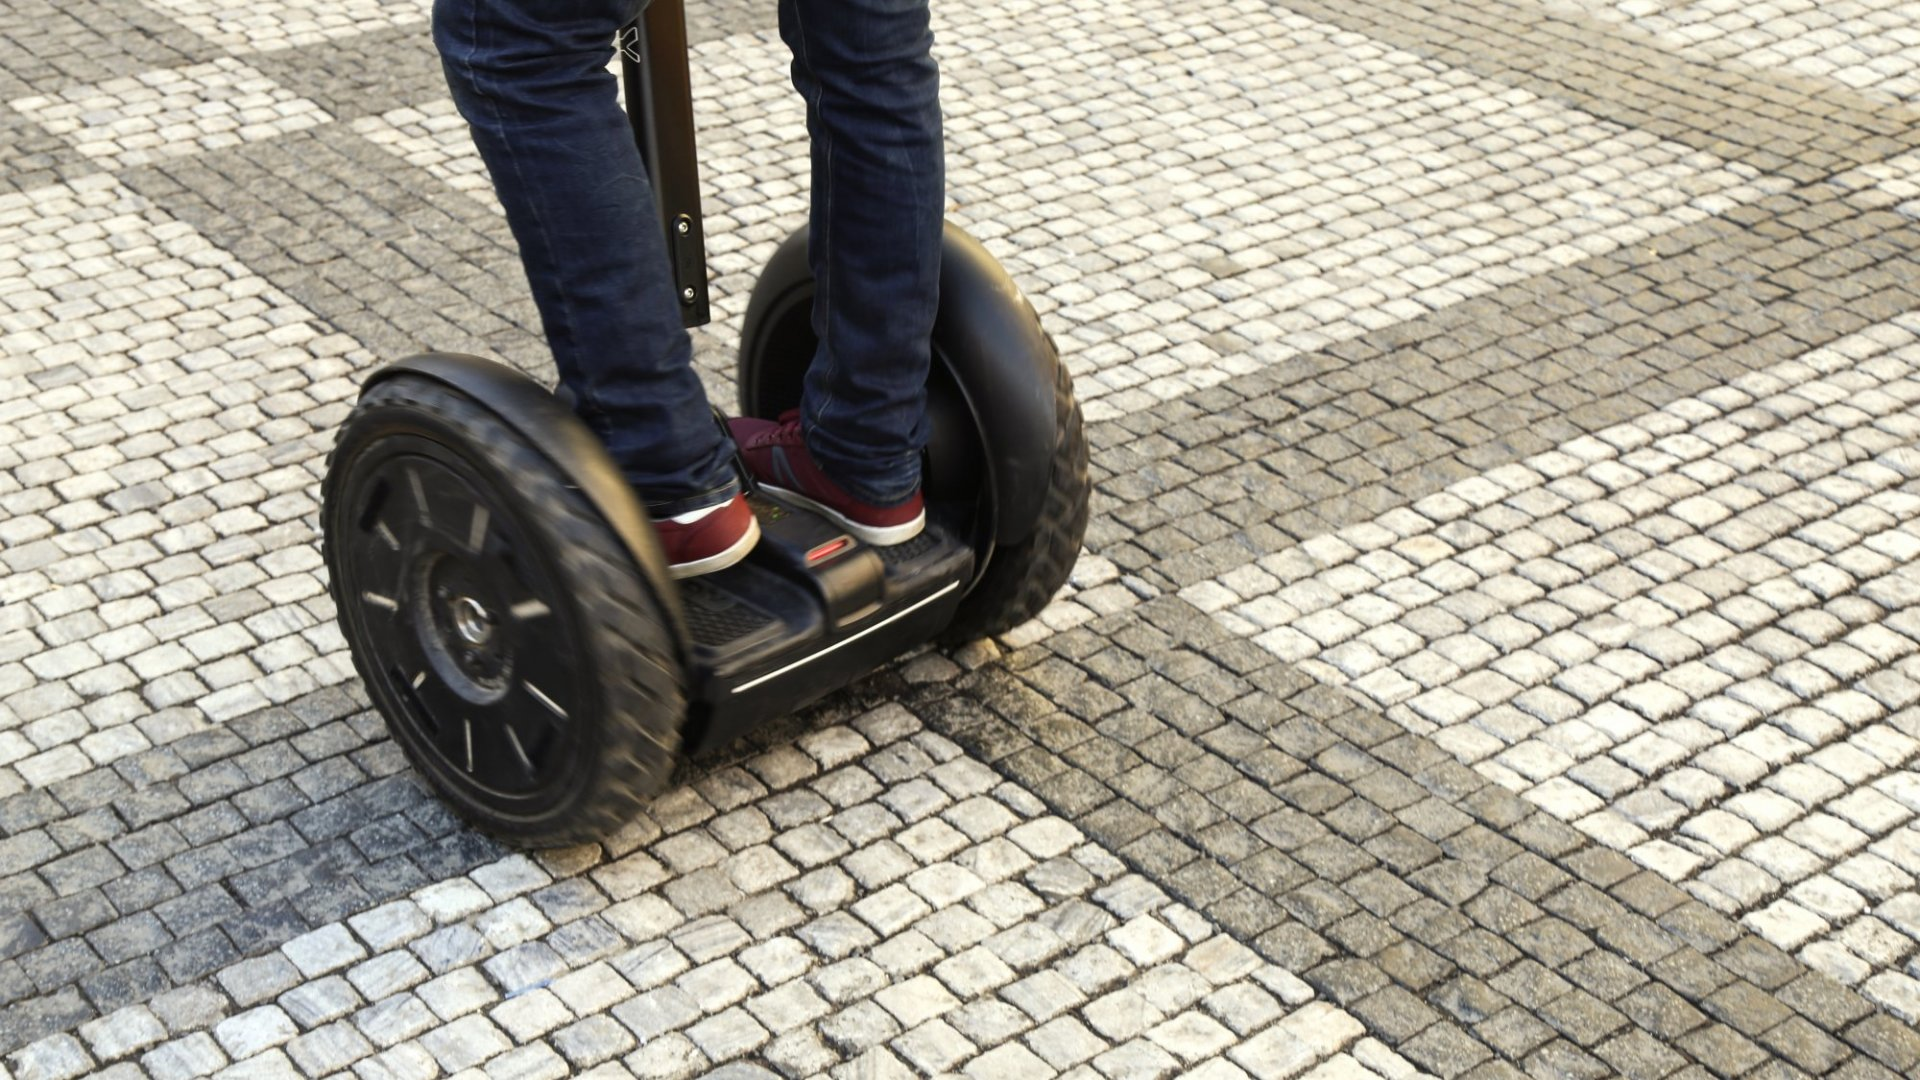 Why Electric Scooters Succeed Where Segway Failed